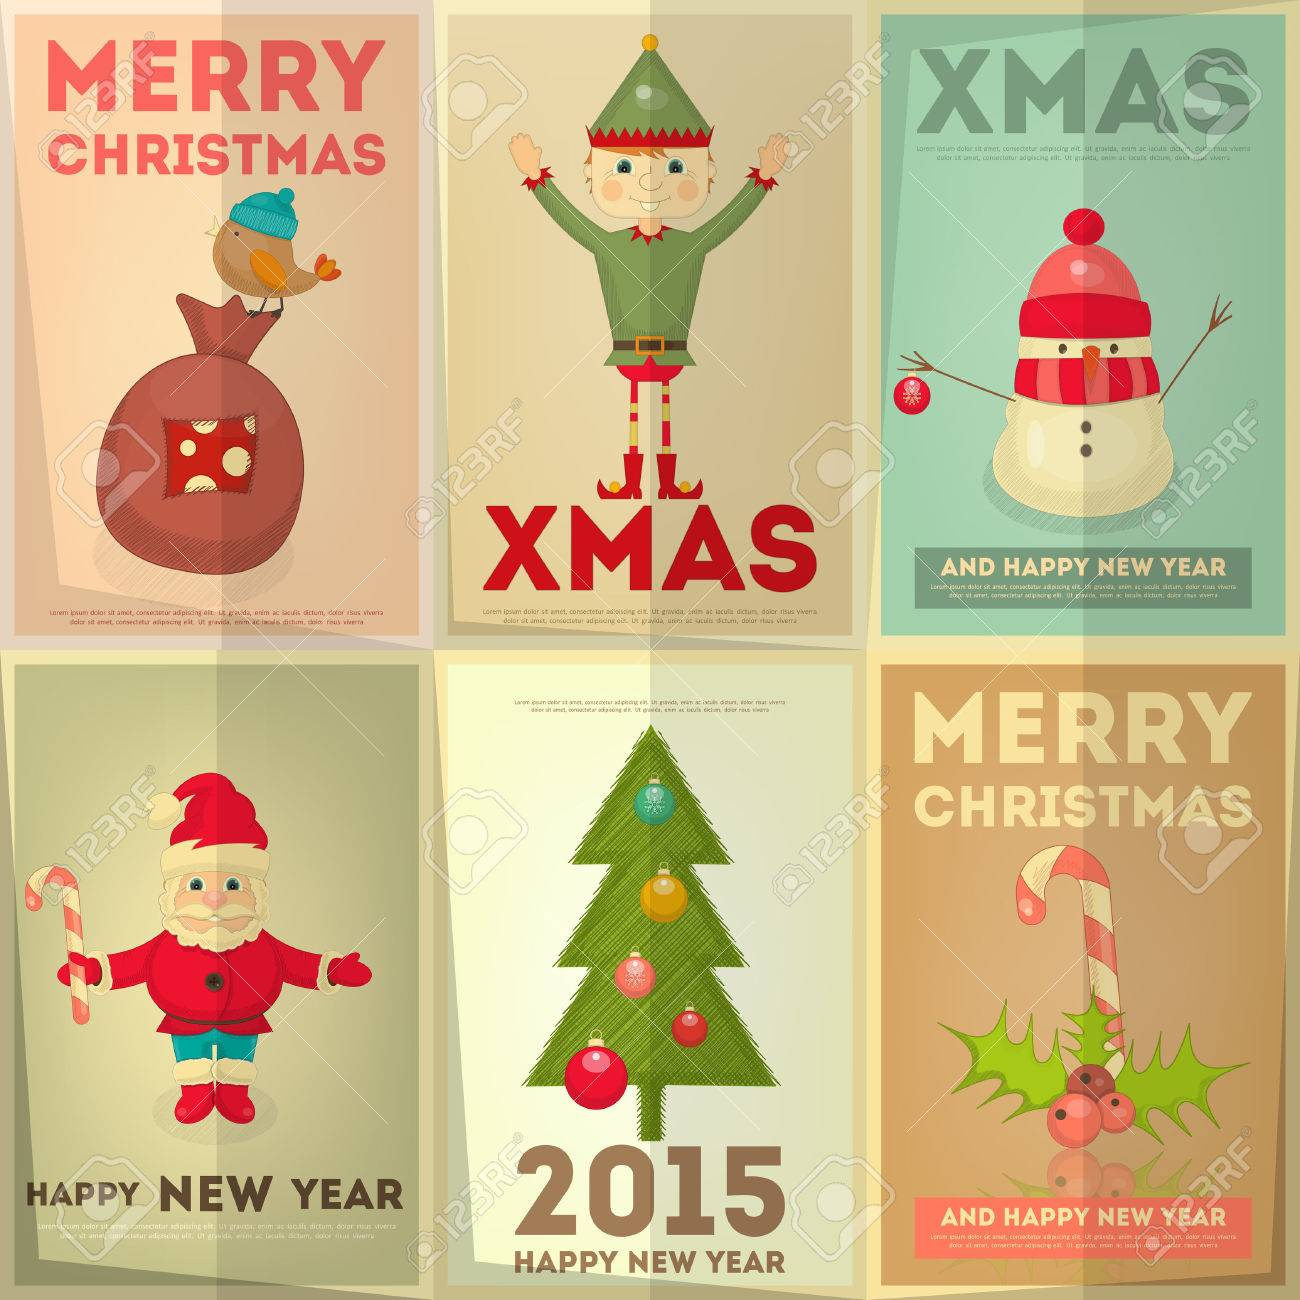 Xmas poster design - Merry Christmas Greeting Poster Set With Cartoon Cute Santa Claus Christmas Elf And Snowman